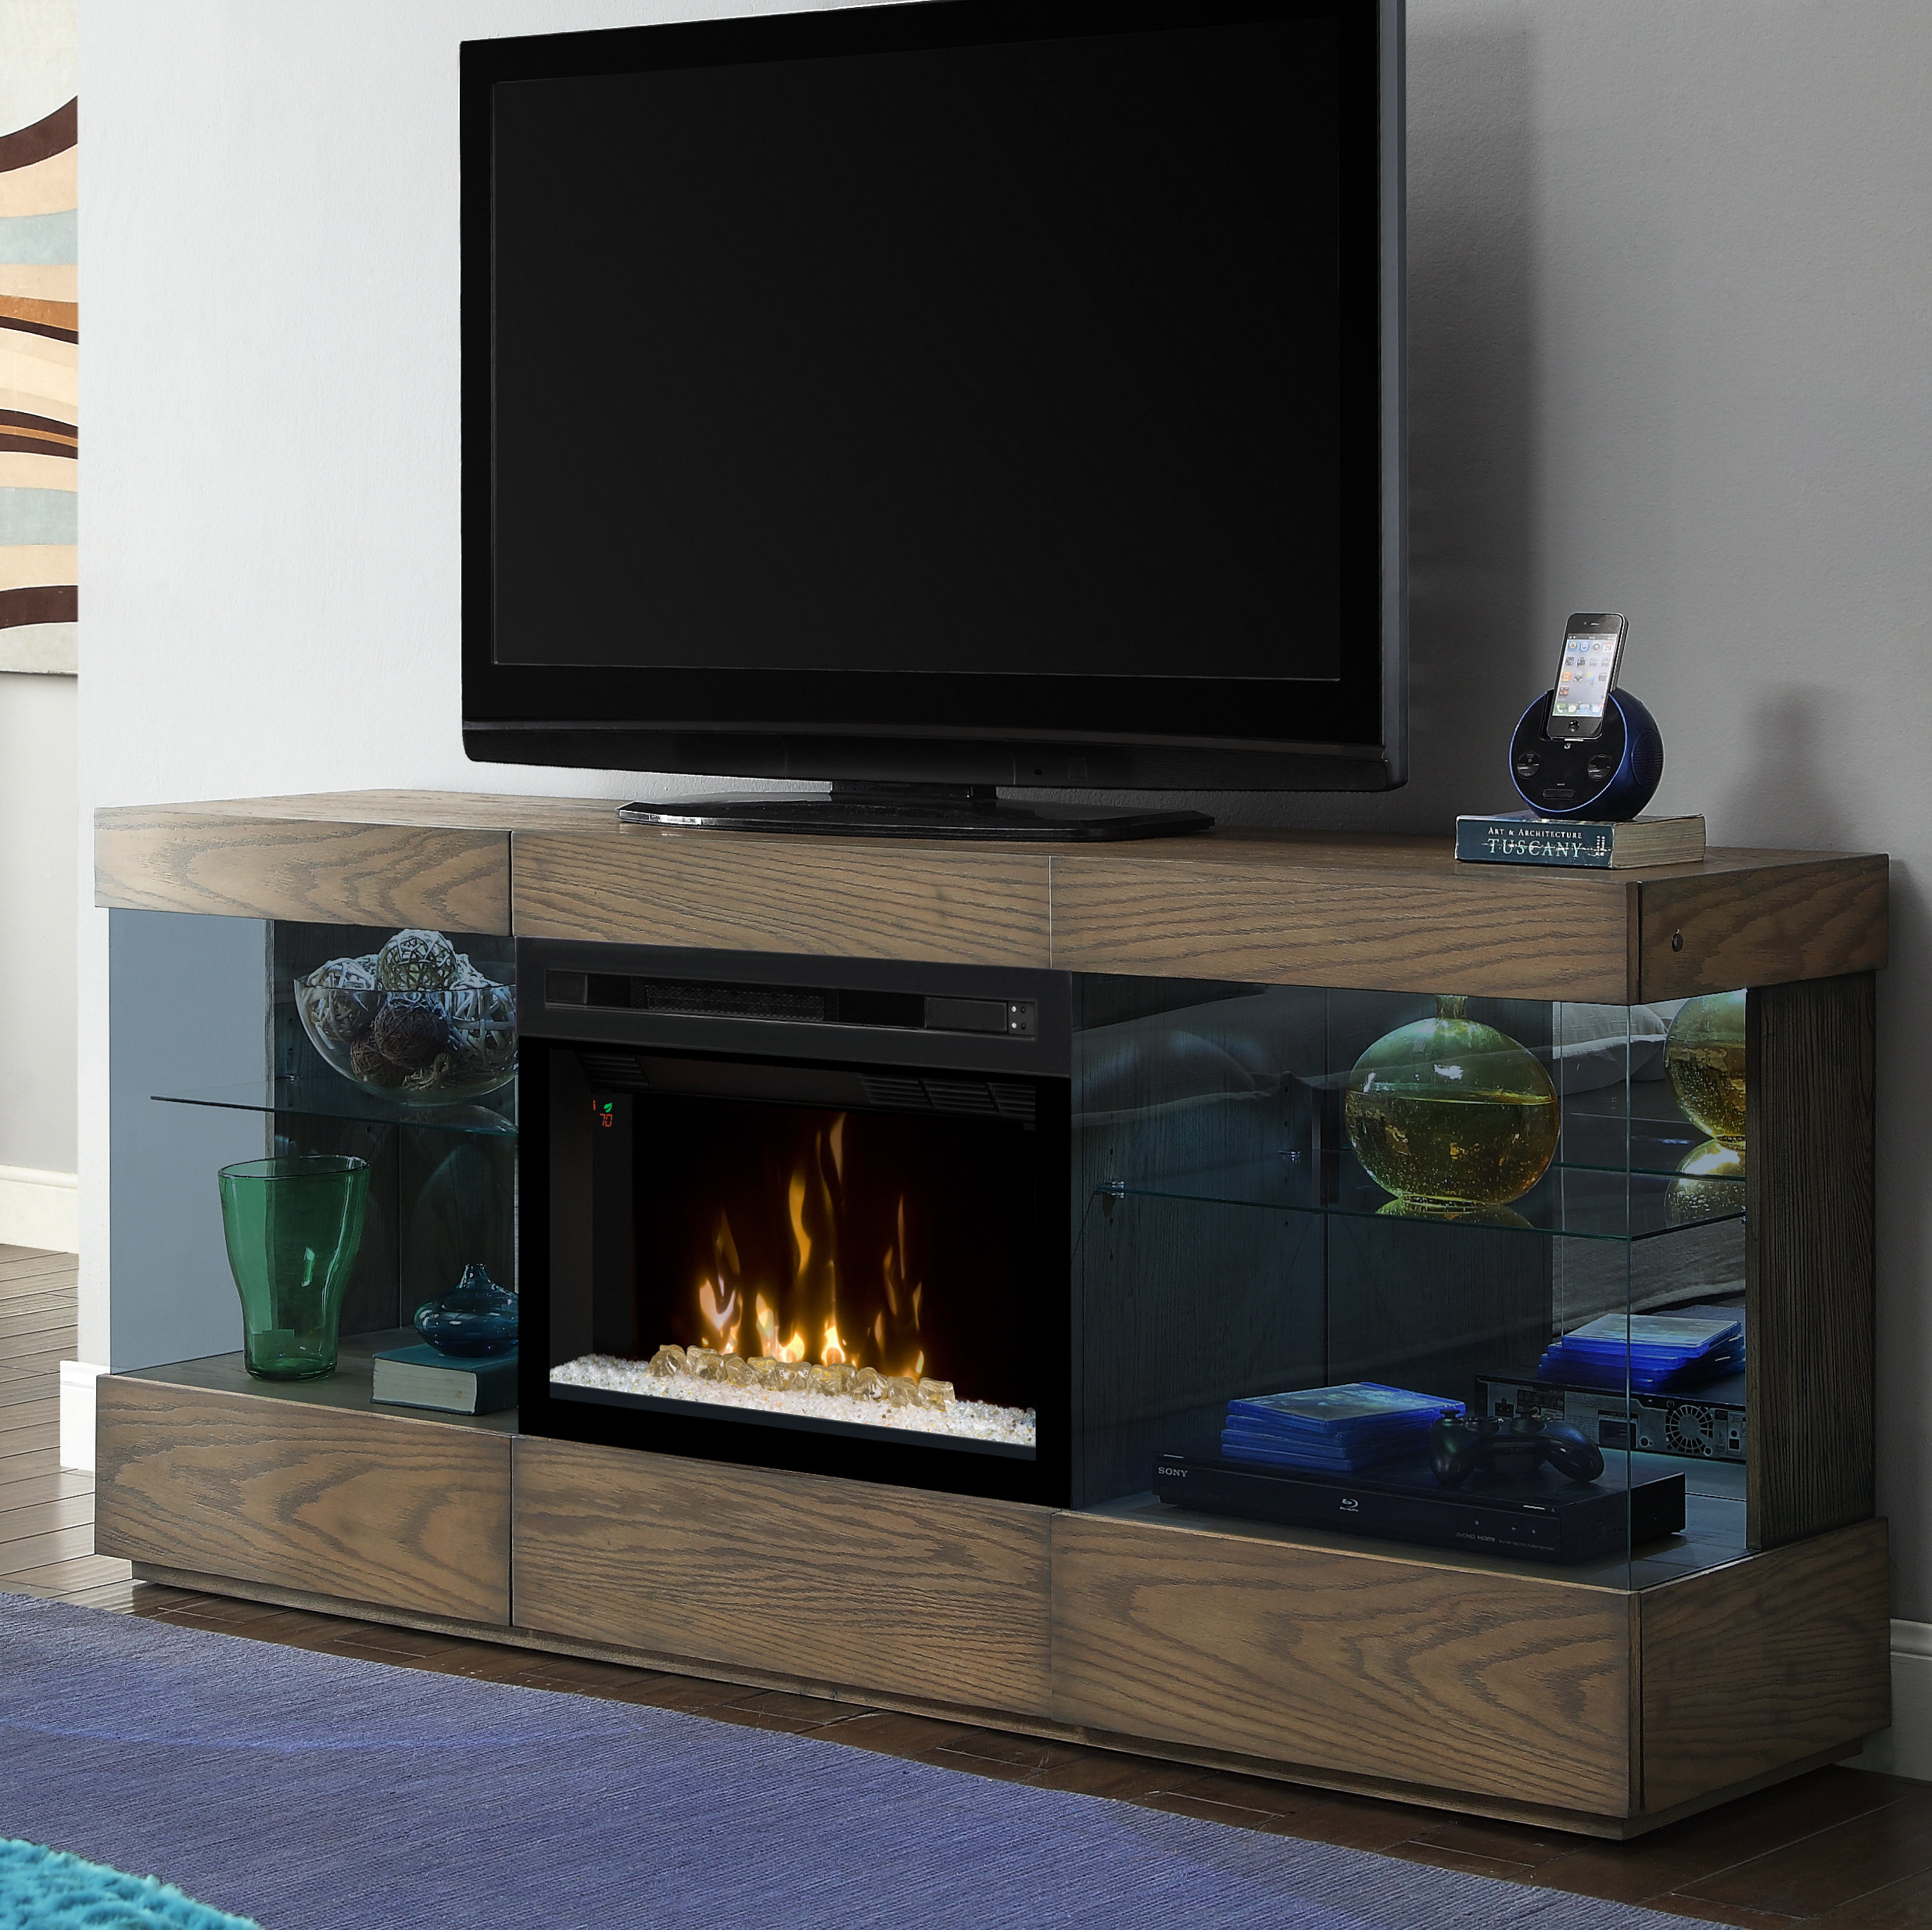 70 Inch And Larger Fireplace Tv Stands You'll Love | Wayfair inside Wyatt 68 Inch Tv Stands (Image 1 of 30)